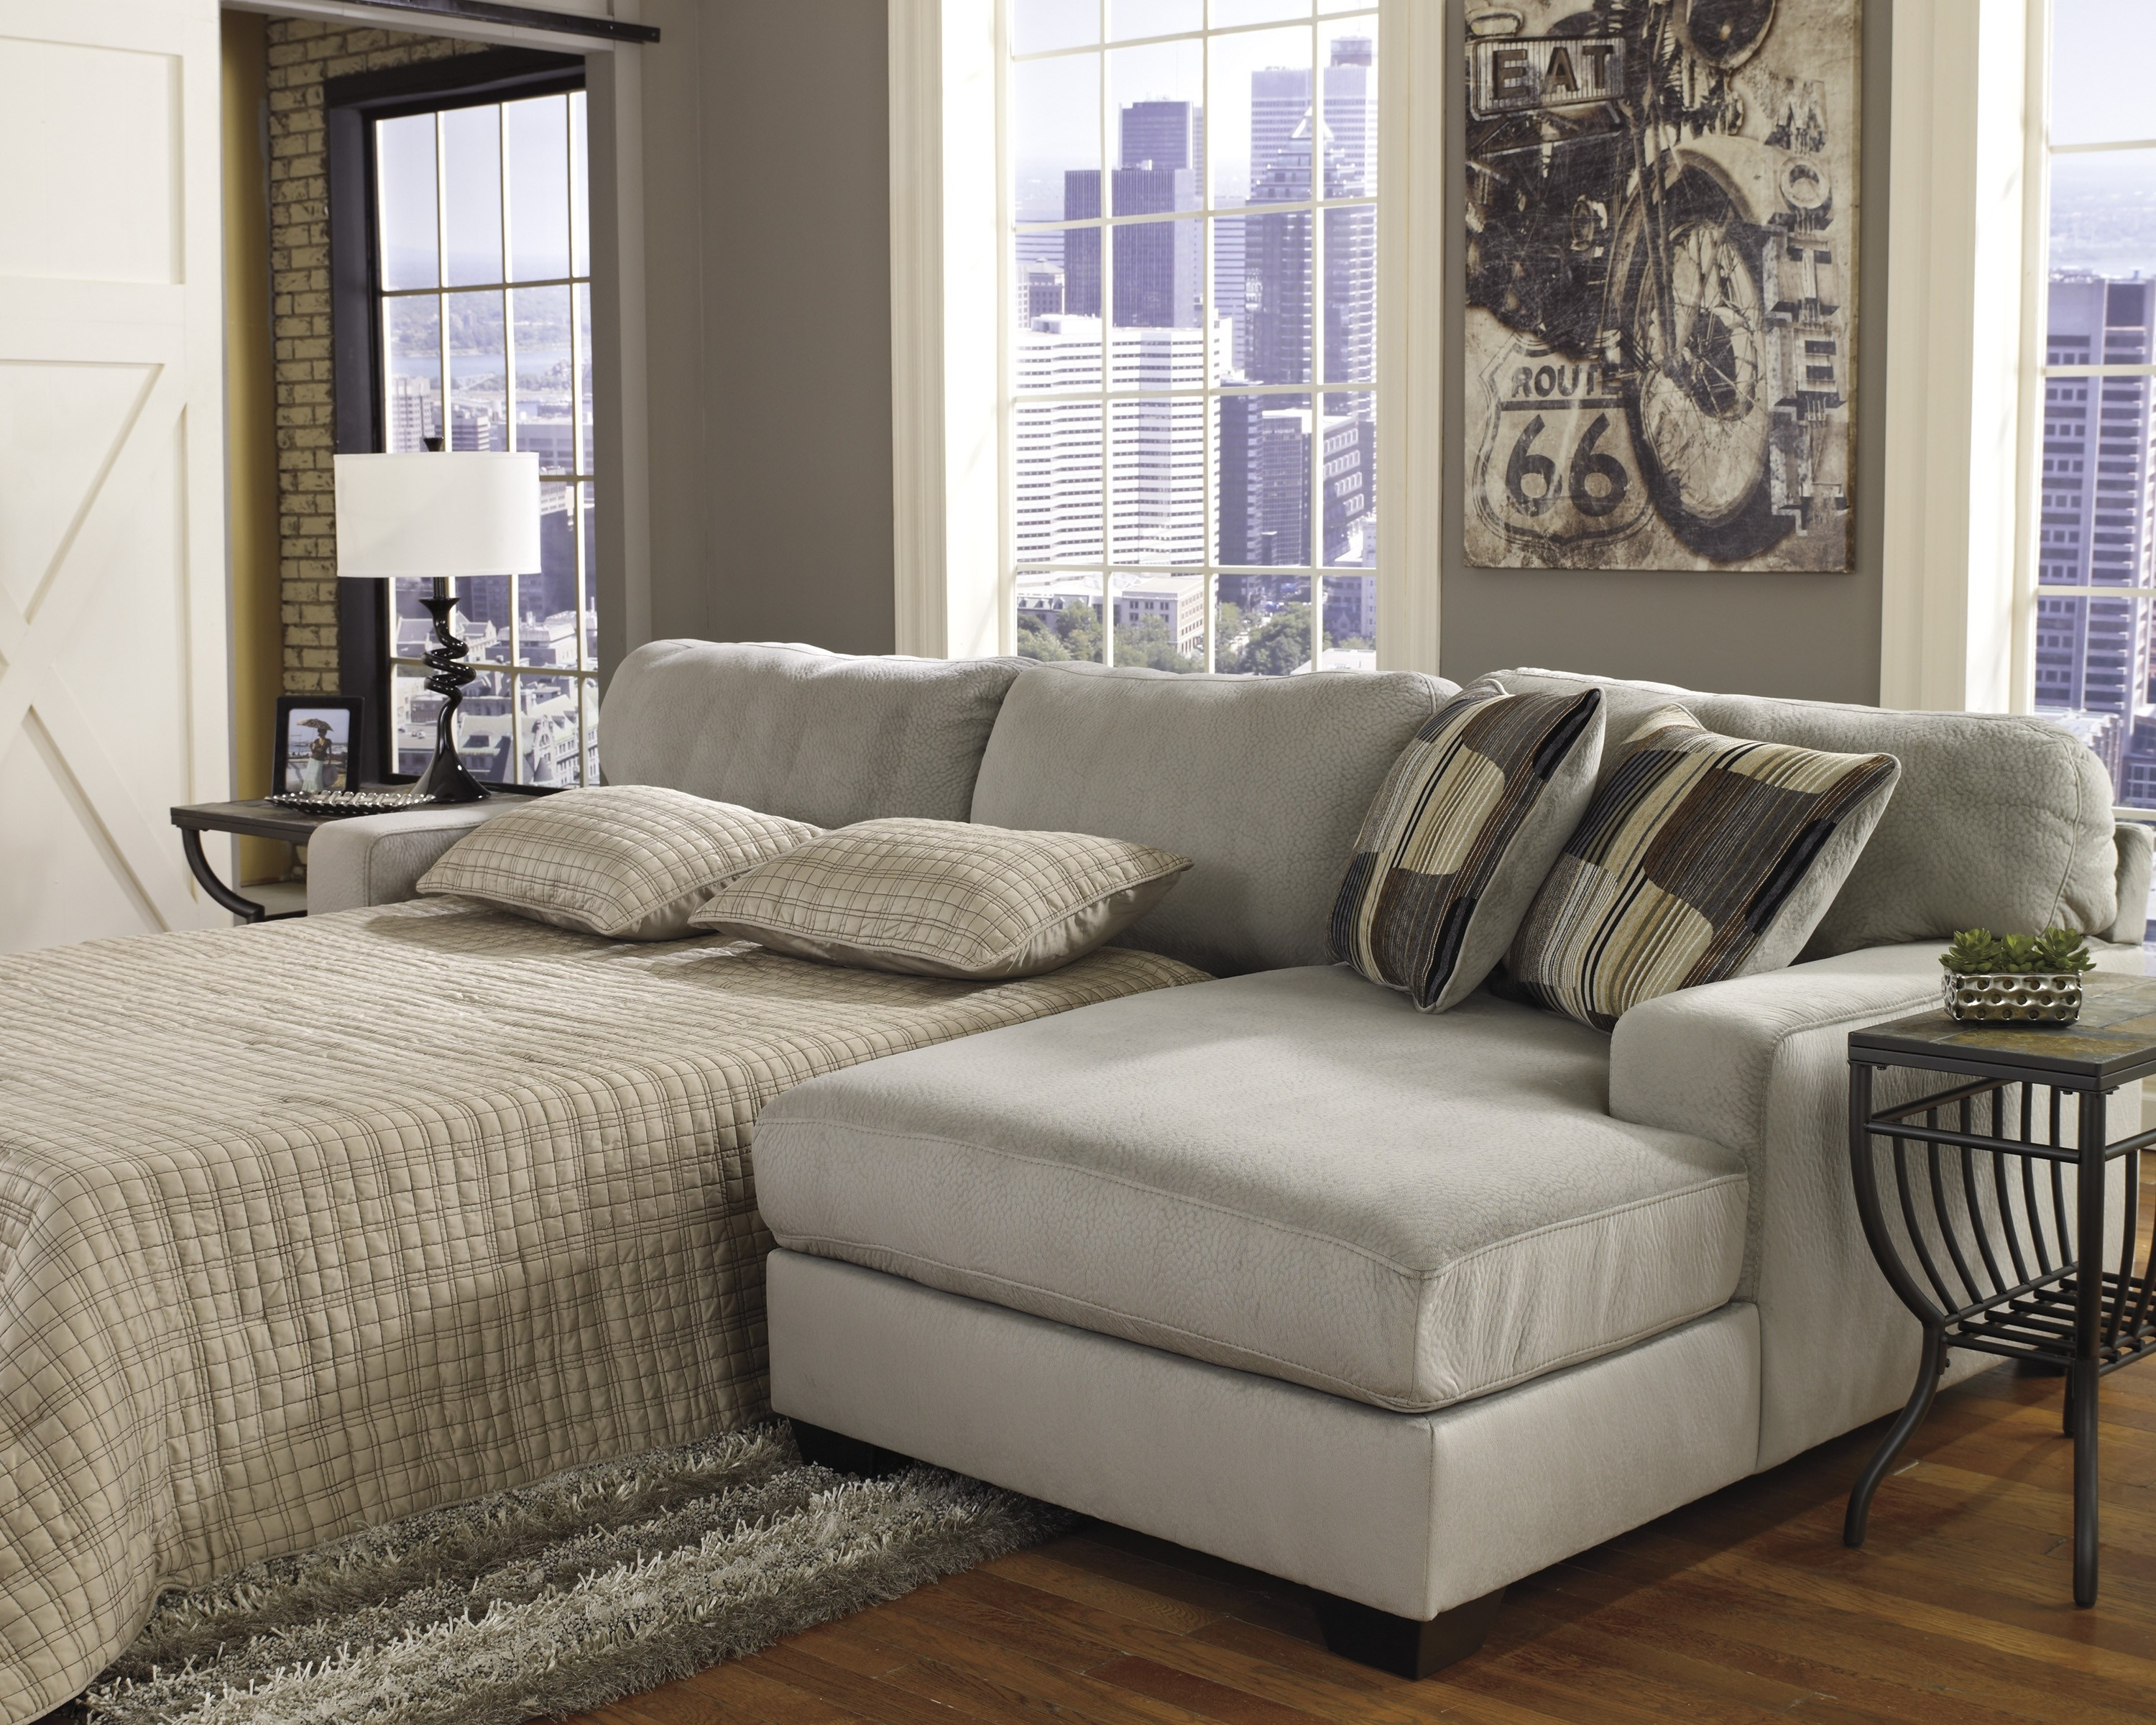 Wonderful Sectional Sofas With Sleeper Bed 52 In 3 Piece Sectional In 3 Piece Sectional Sleeper Sofa (#11 of 12)